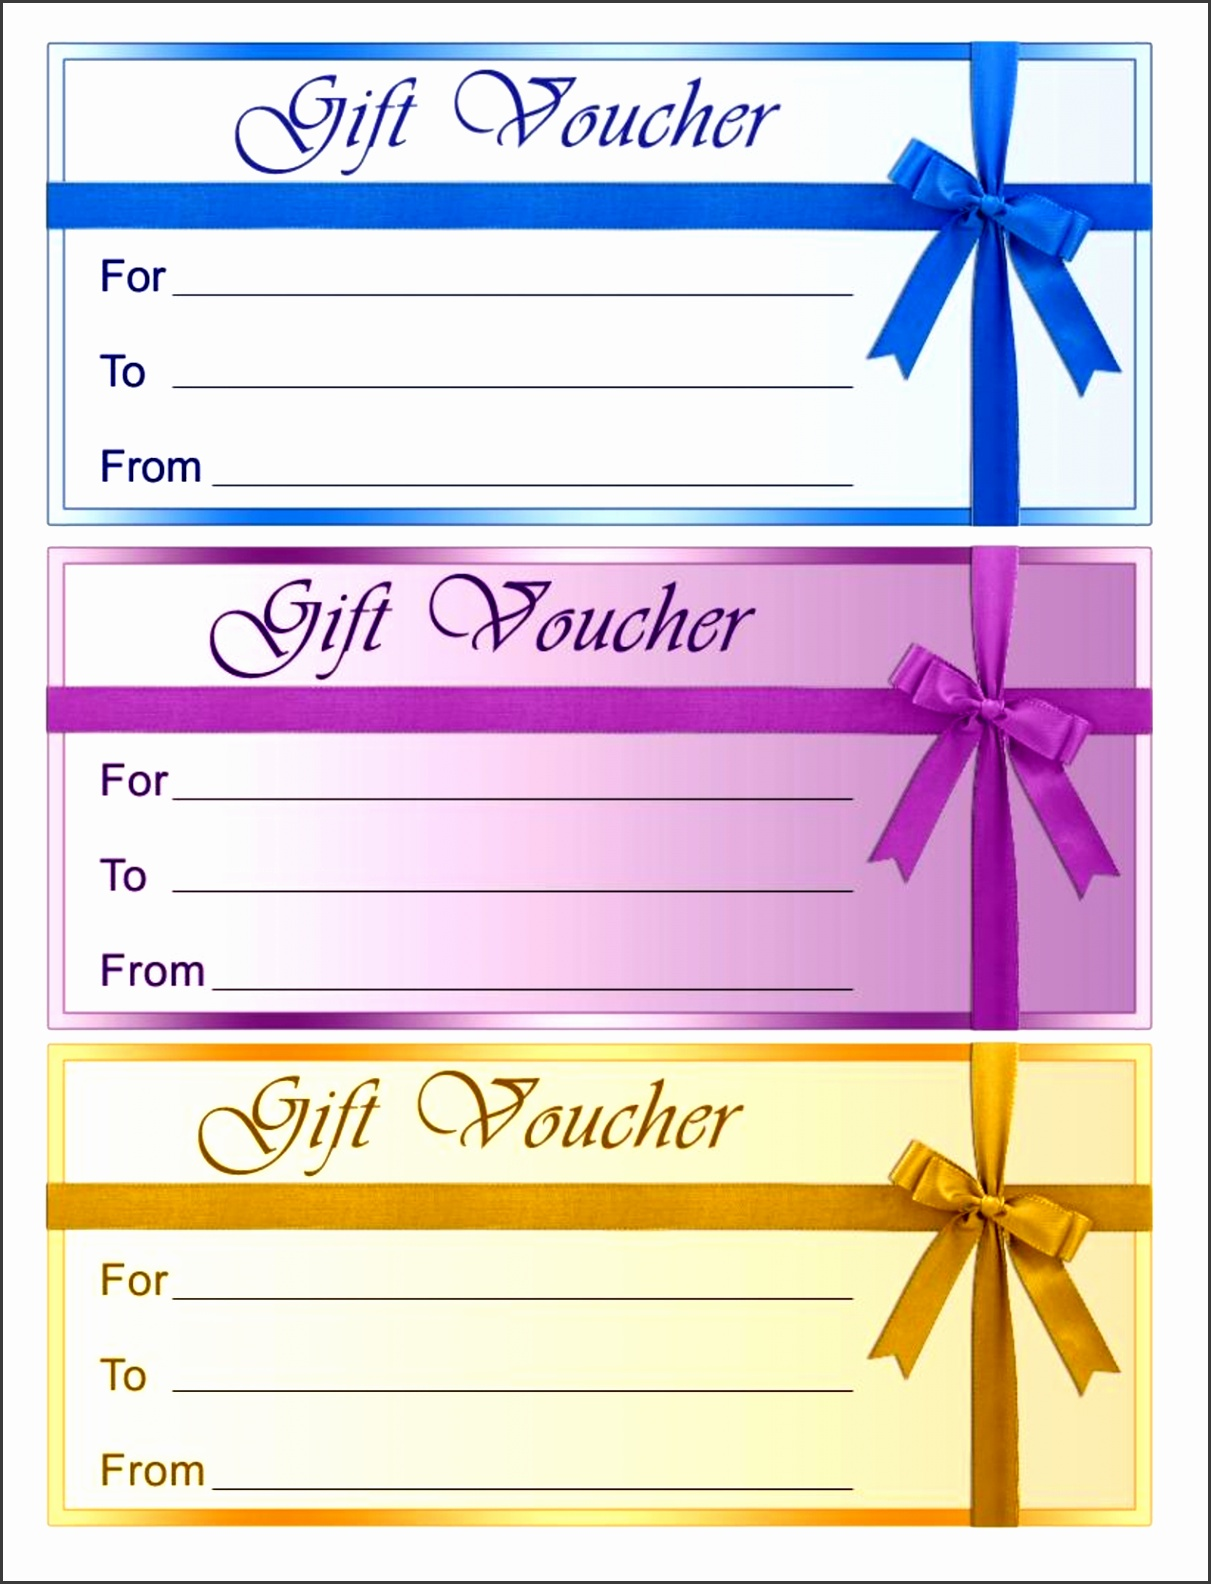 Prize Voucher Template Quick Reference Guide Template Word Swot Prize Voucher Template Free Voucher Templatesframe Gift